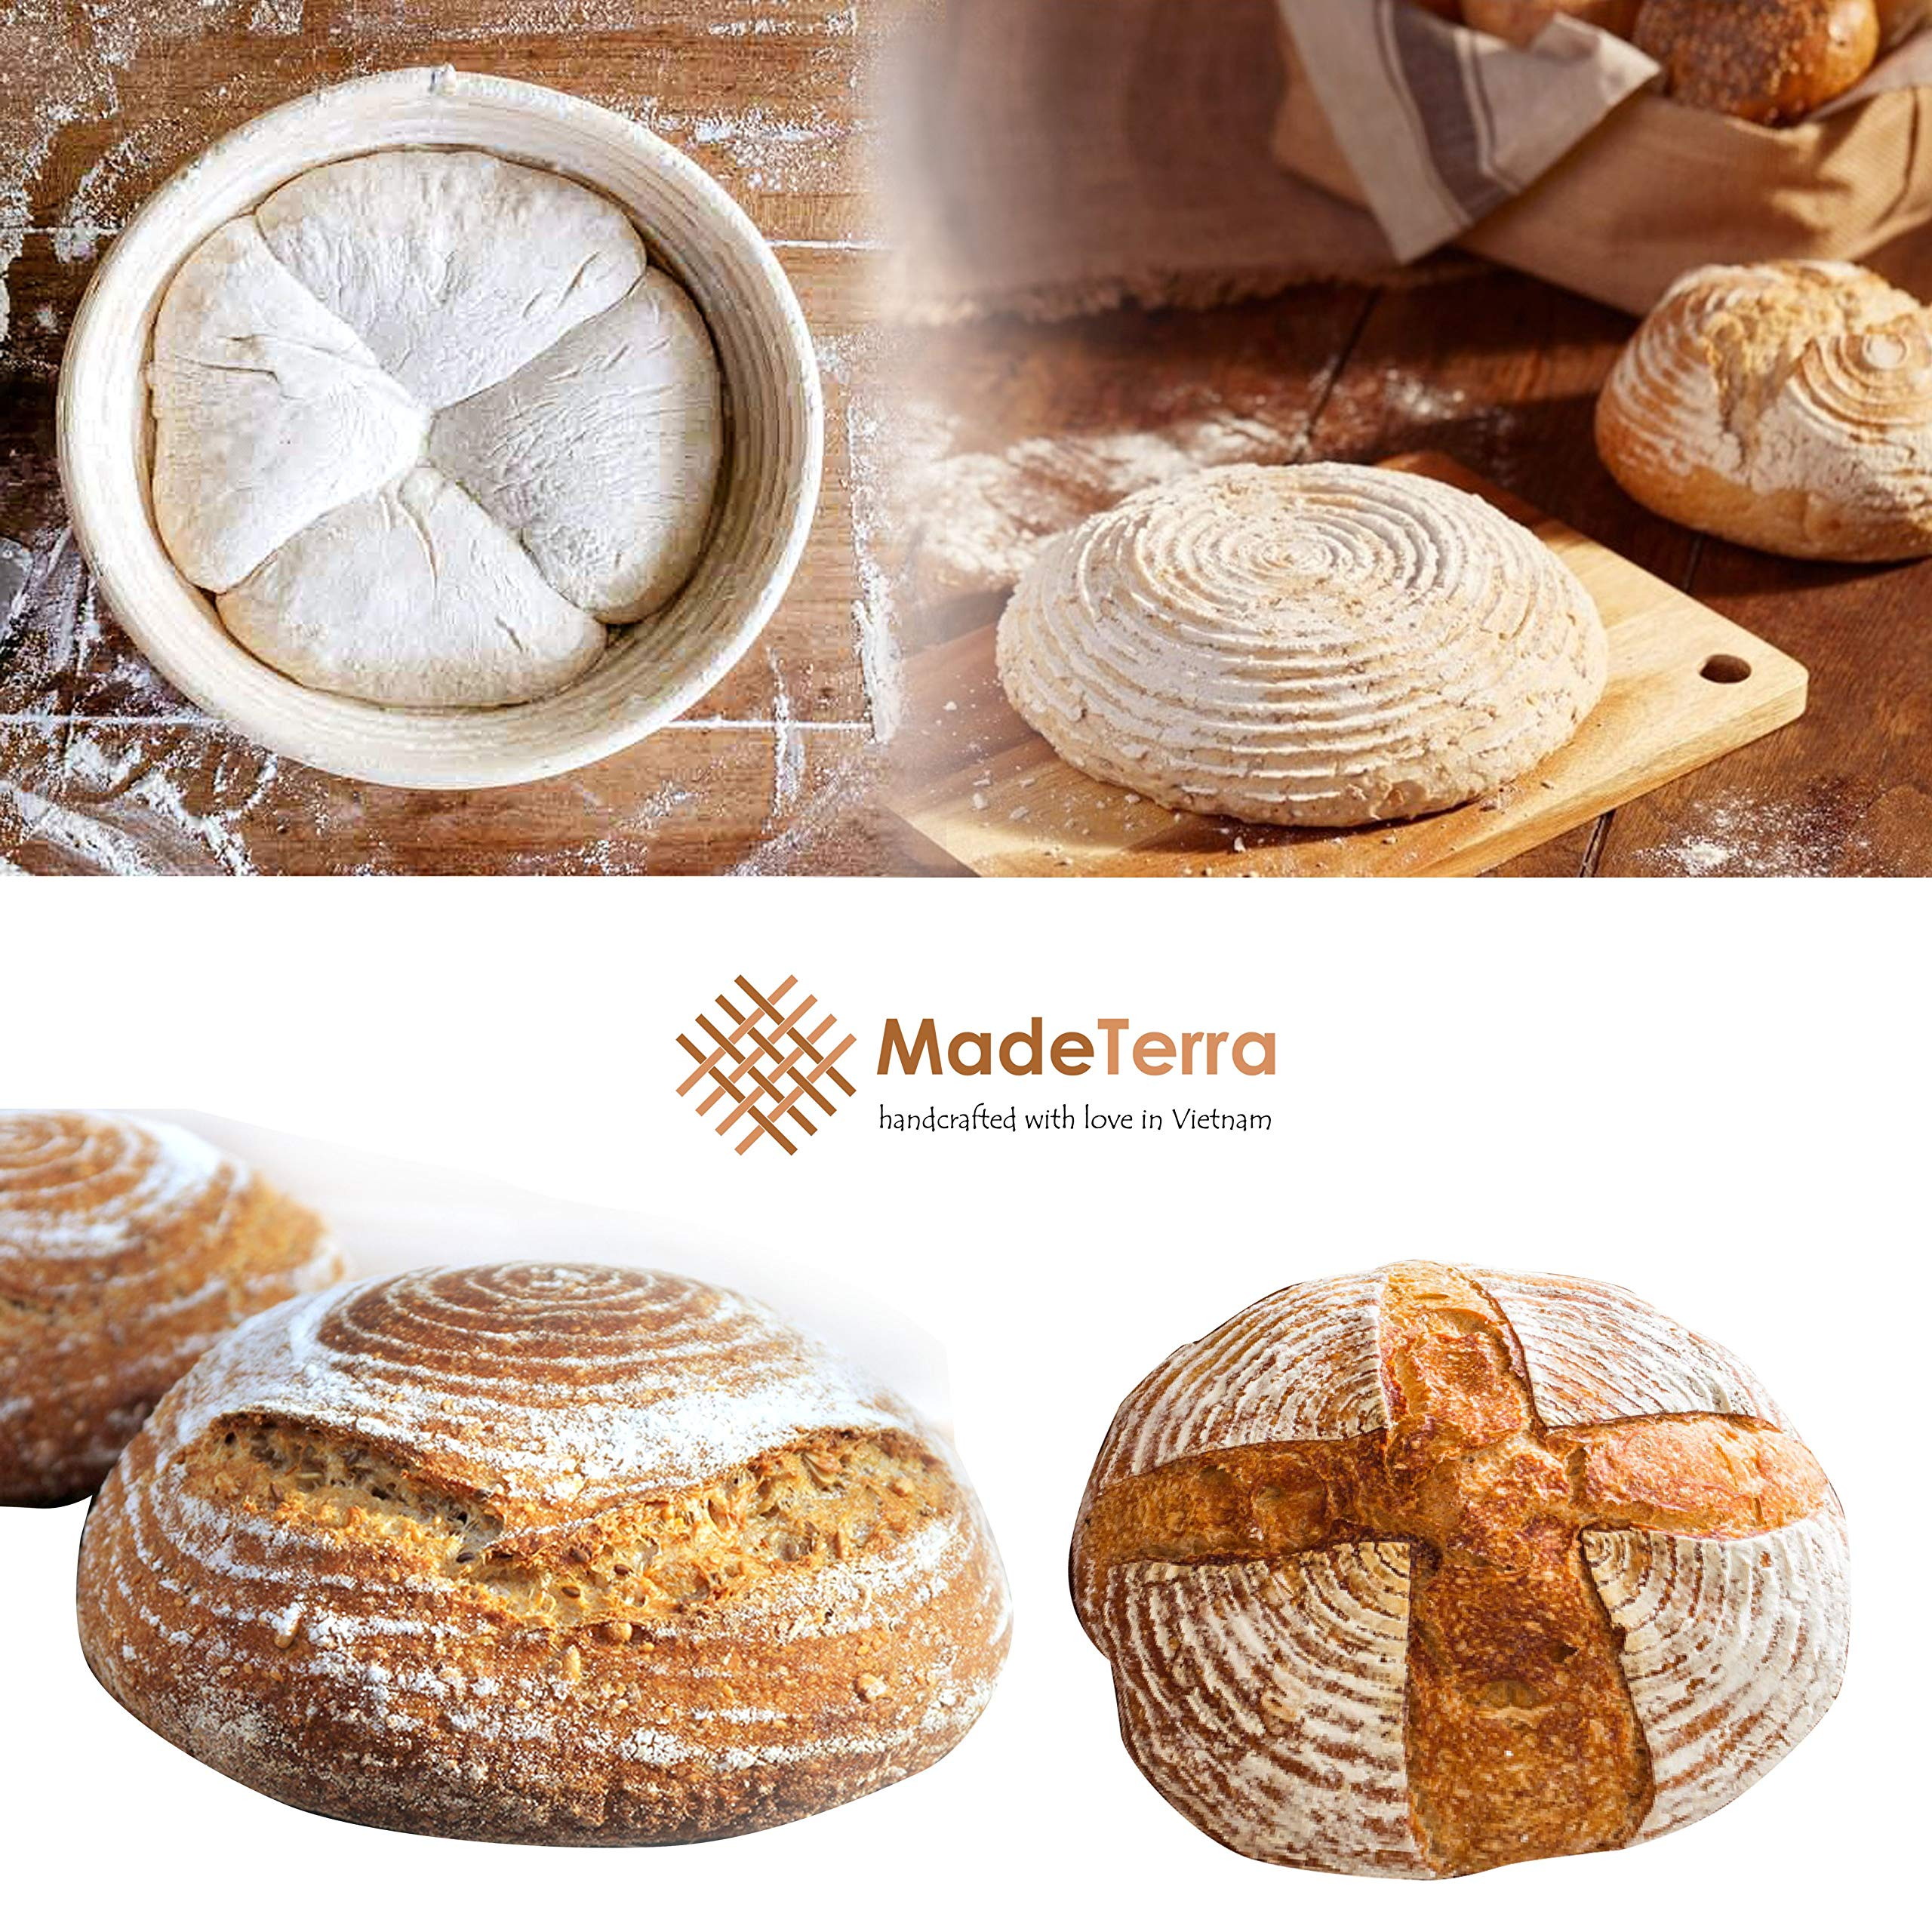 9 inch Banneton Proofing Baskets for Sourdough Bread | Wicker Round Brotform Set with Bamboo Dough Scraper & Cloth Liners | Food-Safe Cane Bread Proofer for Rising (3 Pack 9'' Round Bannetons) by Made Terra (Image #3)